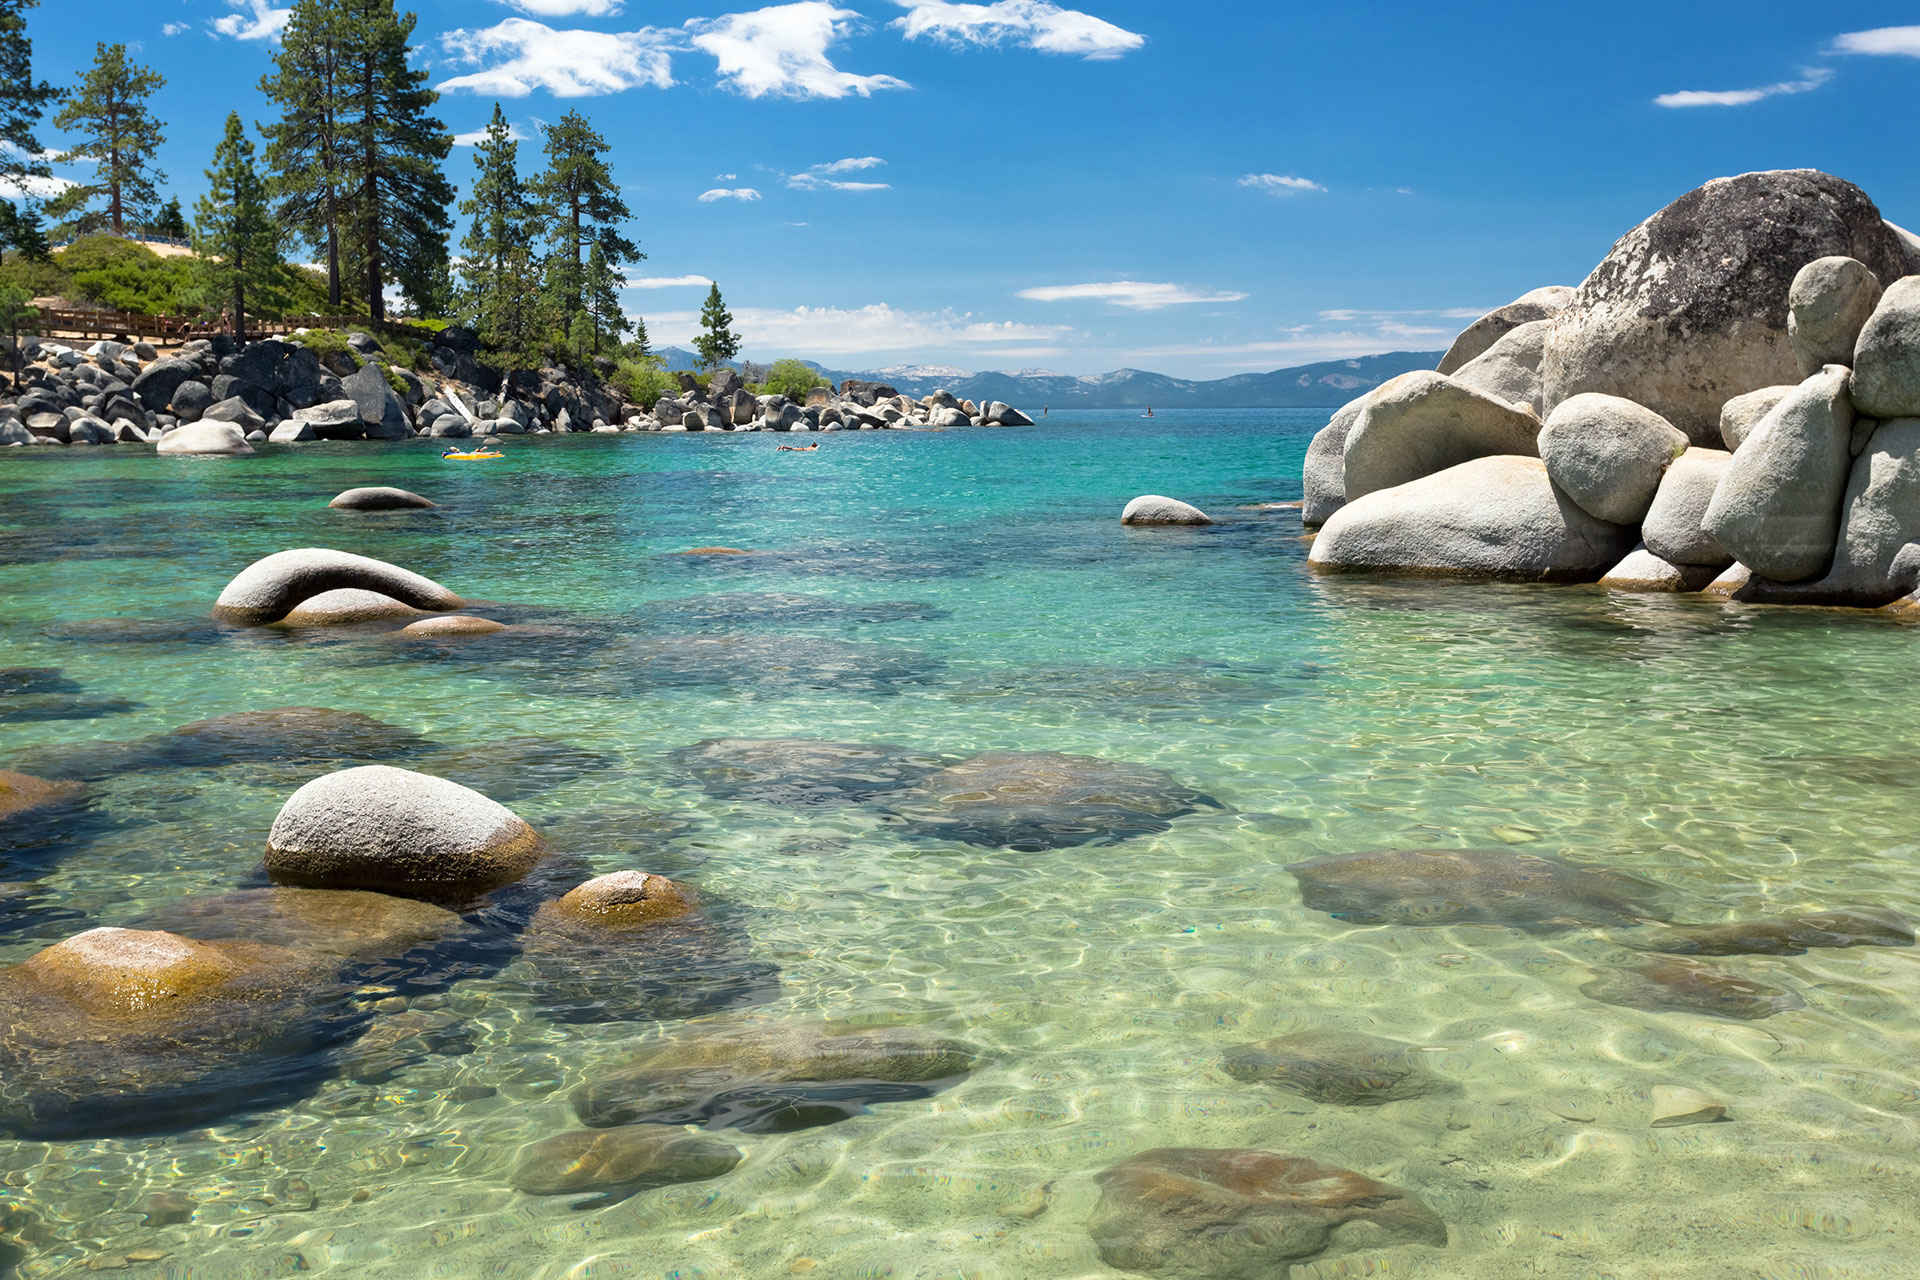 view of lake tahoe; Courtesy of topseller/Shutterstock.com